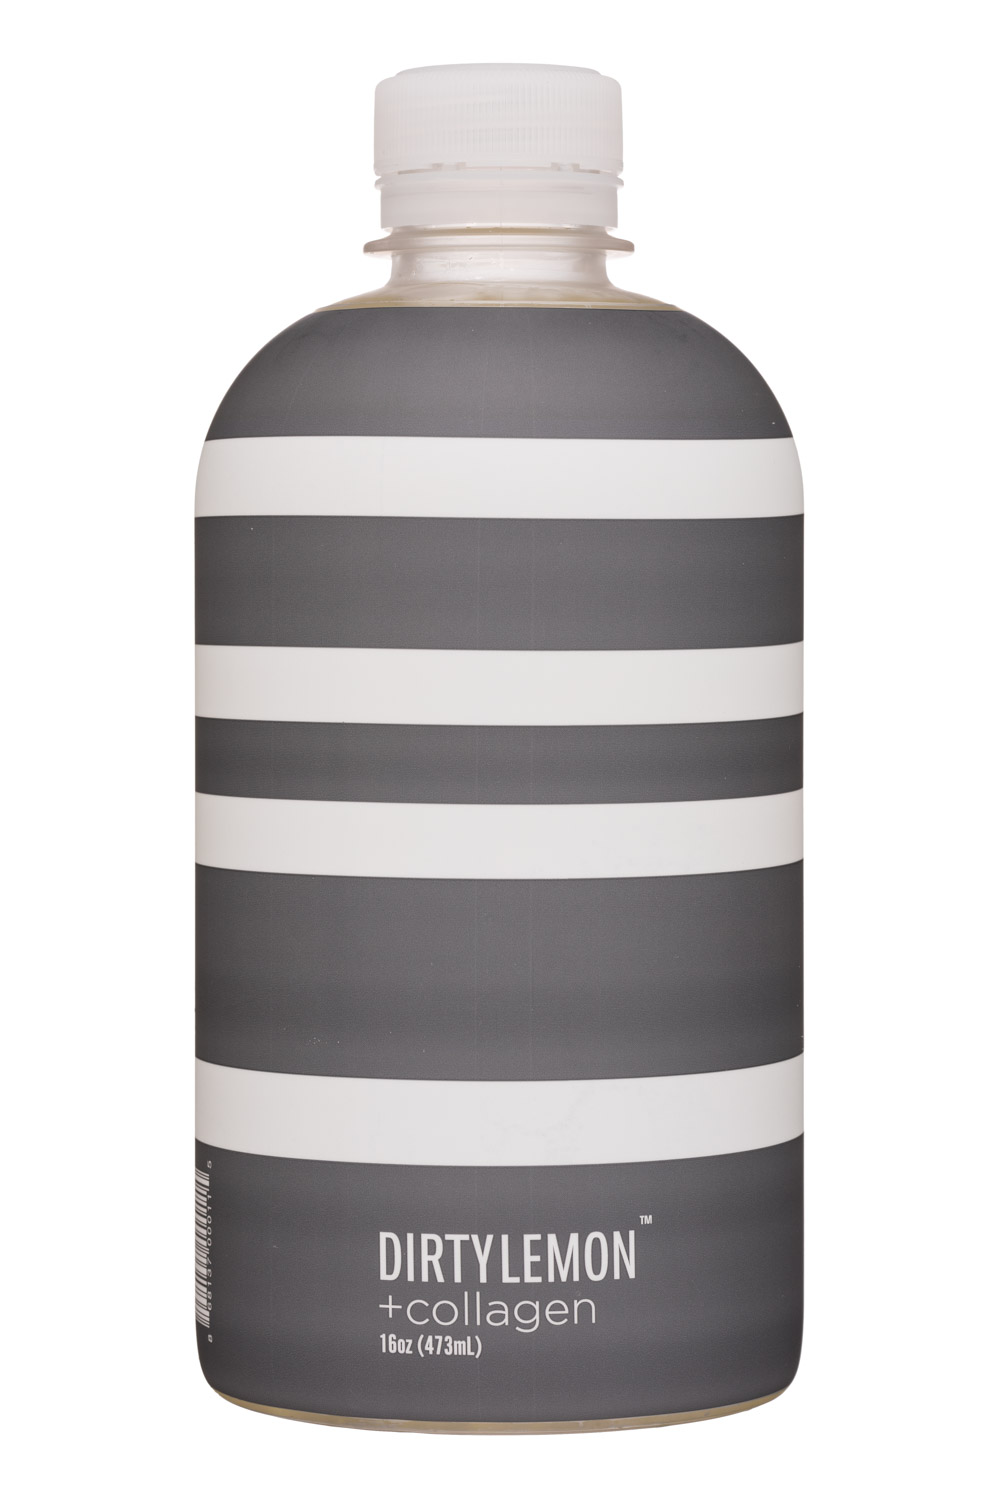 DIRTY LEMON: DirtyLemon-16oz-Collagen-Front